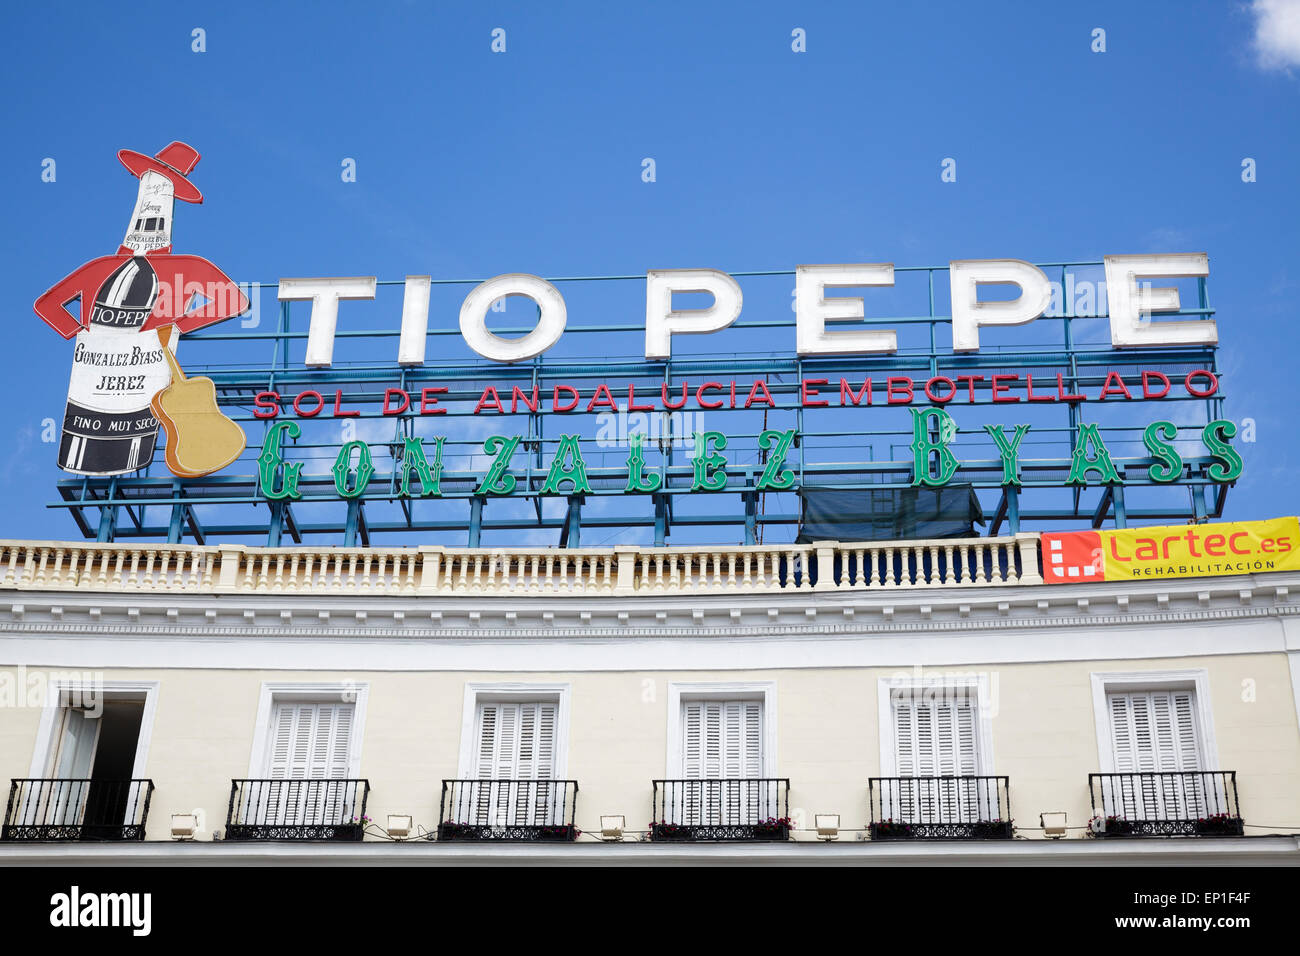 Tio pepe sign in sol square puerta del sol madrid spain for Tio pepe madrid puerta del sol